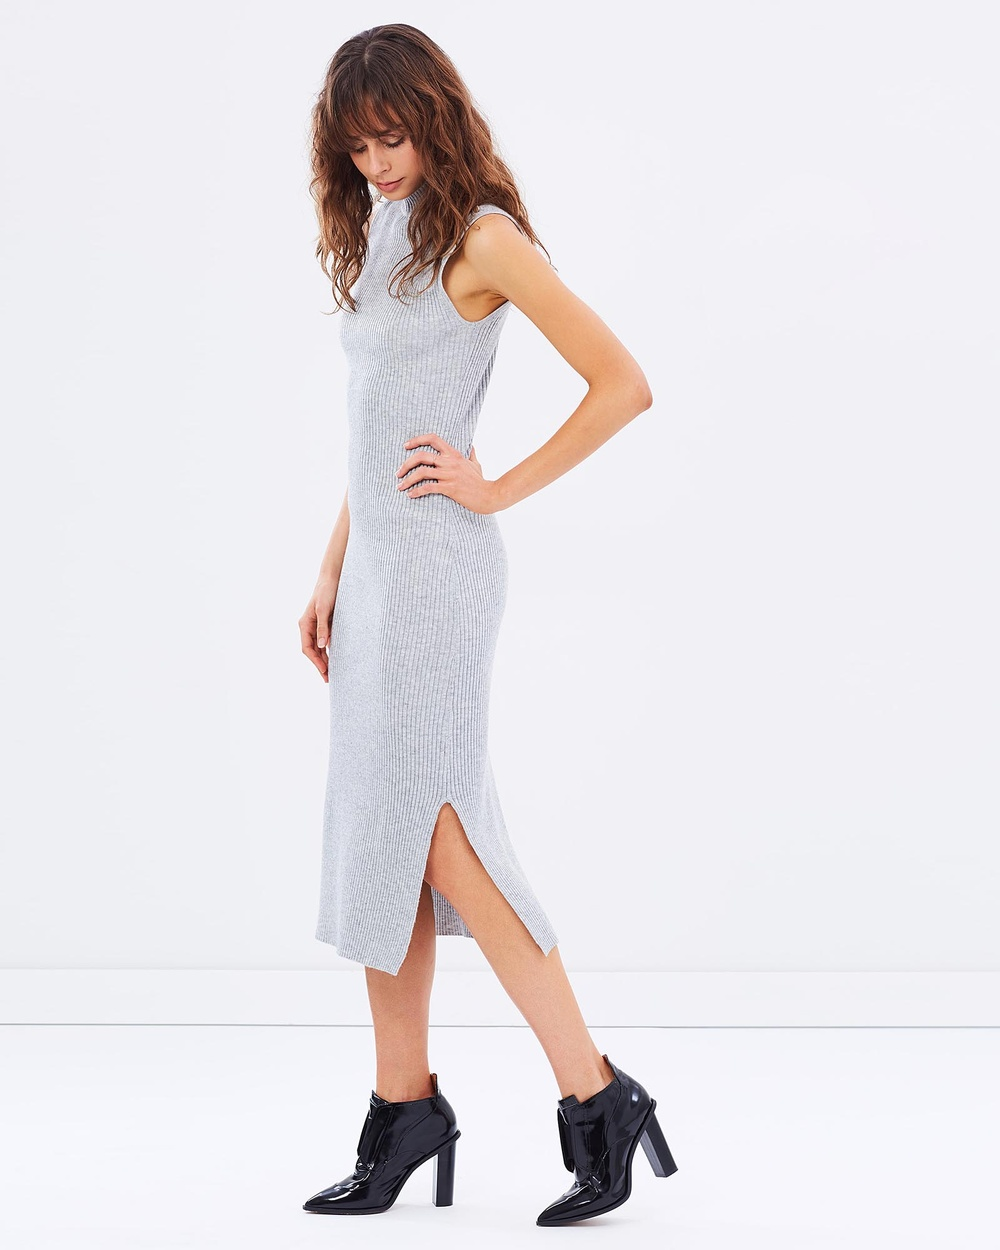 Friend of Audrey Zoe Knit Dress Bodycon Dresses Grey Zoe Knit Dress